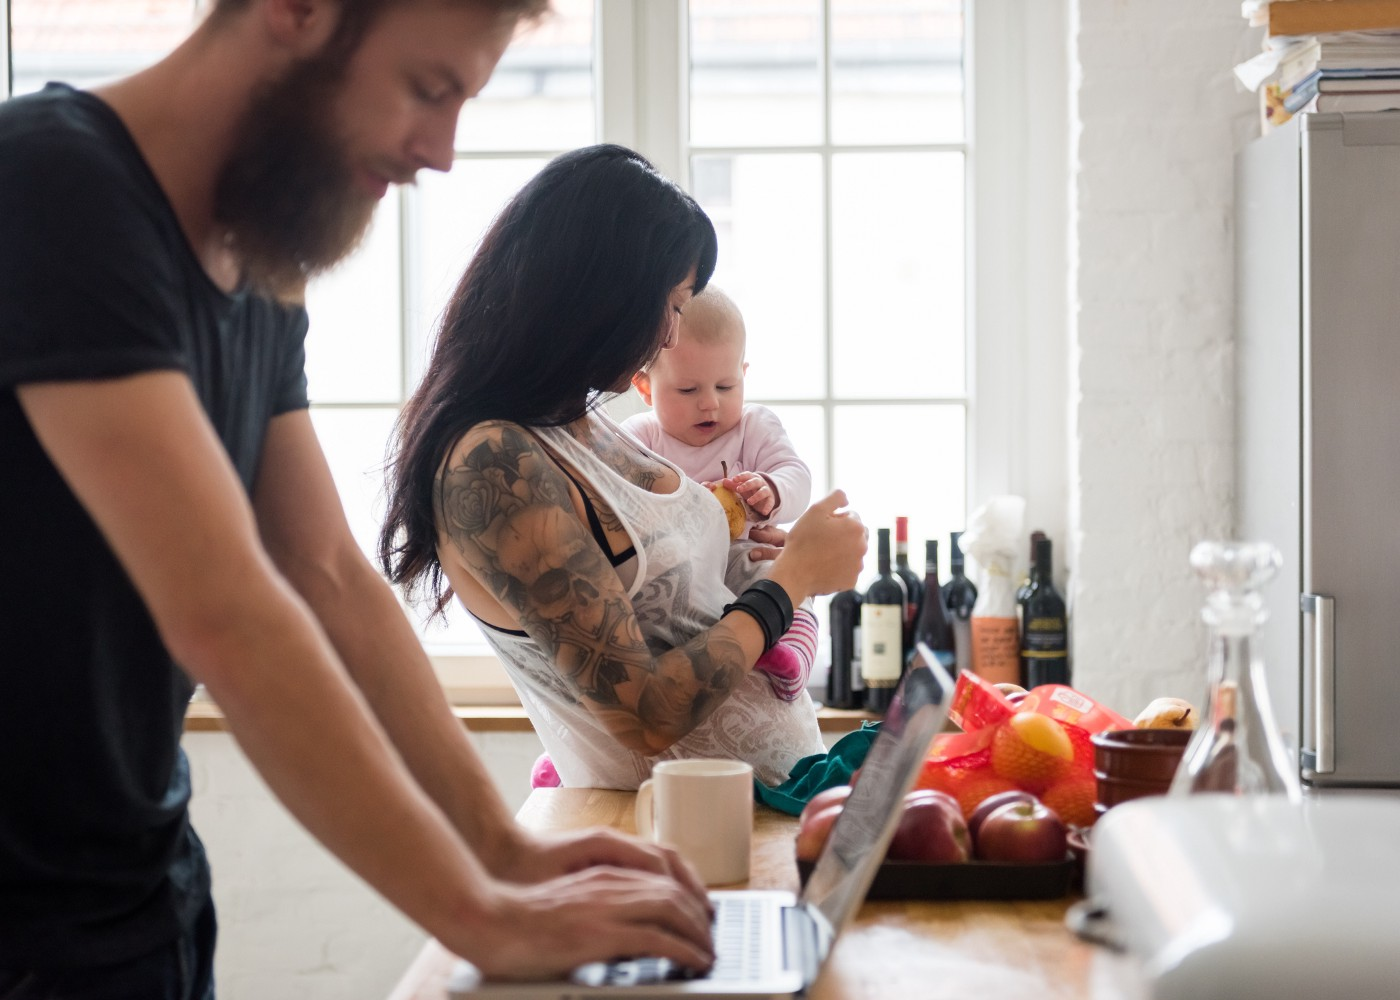 Young mother holding her newborn baby in the kitchen while the father works on his laptop in the foreground.